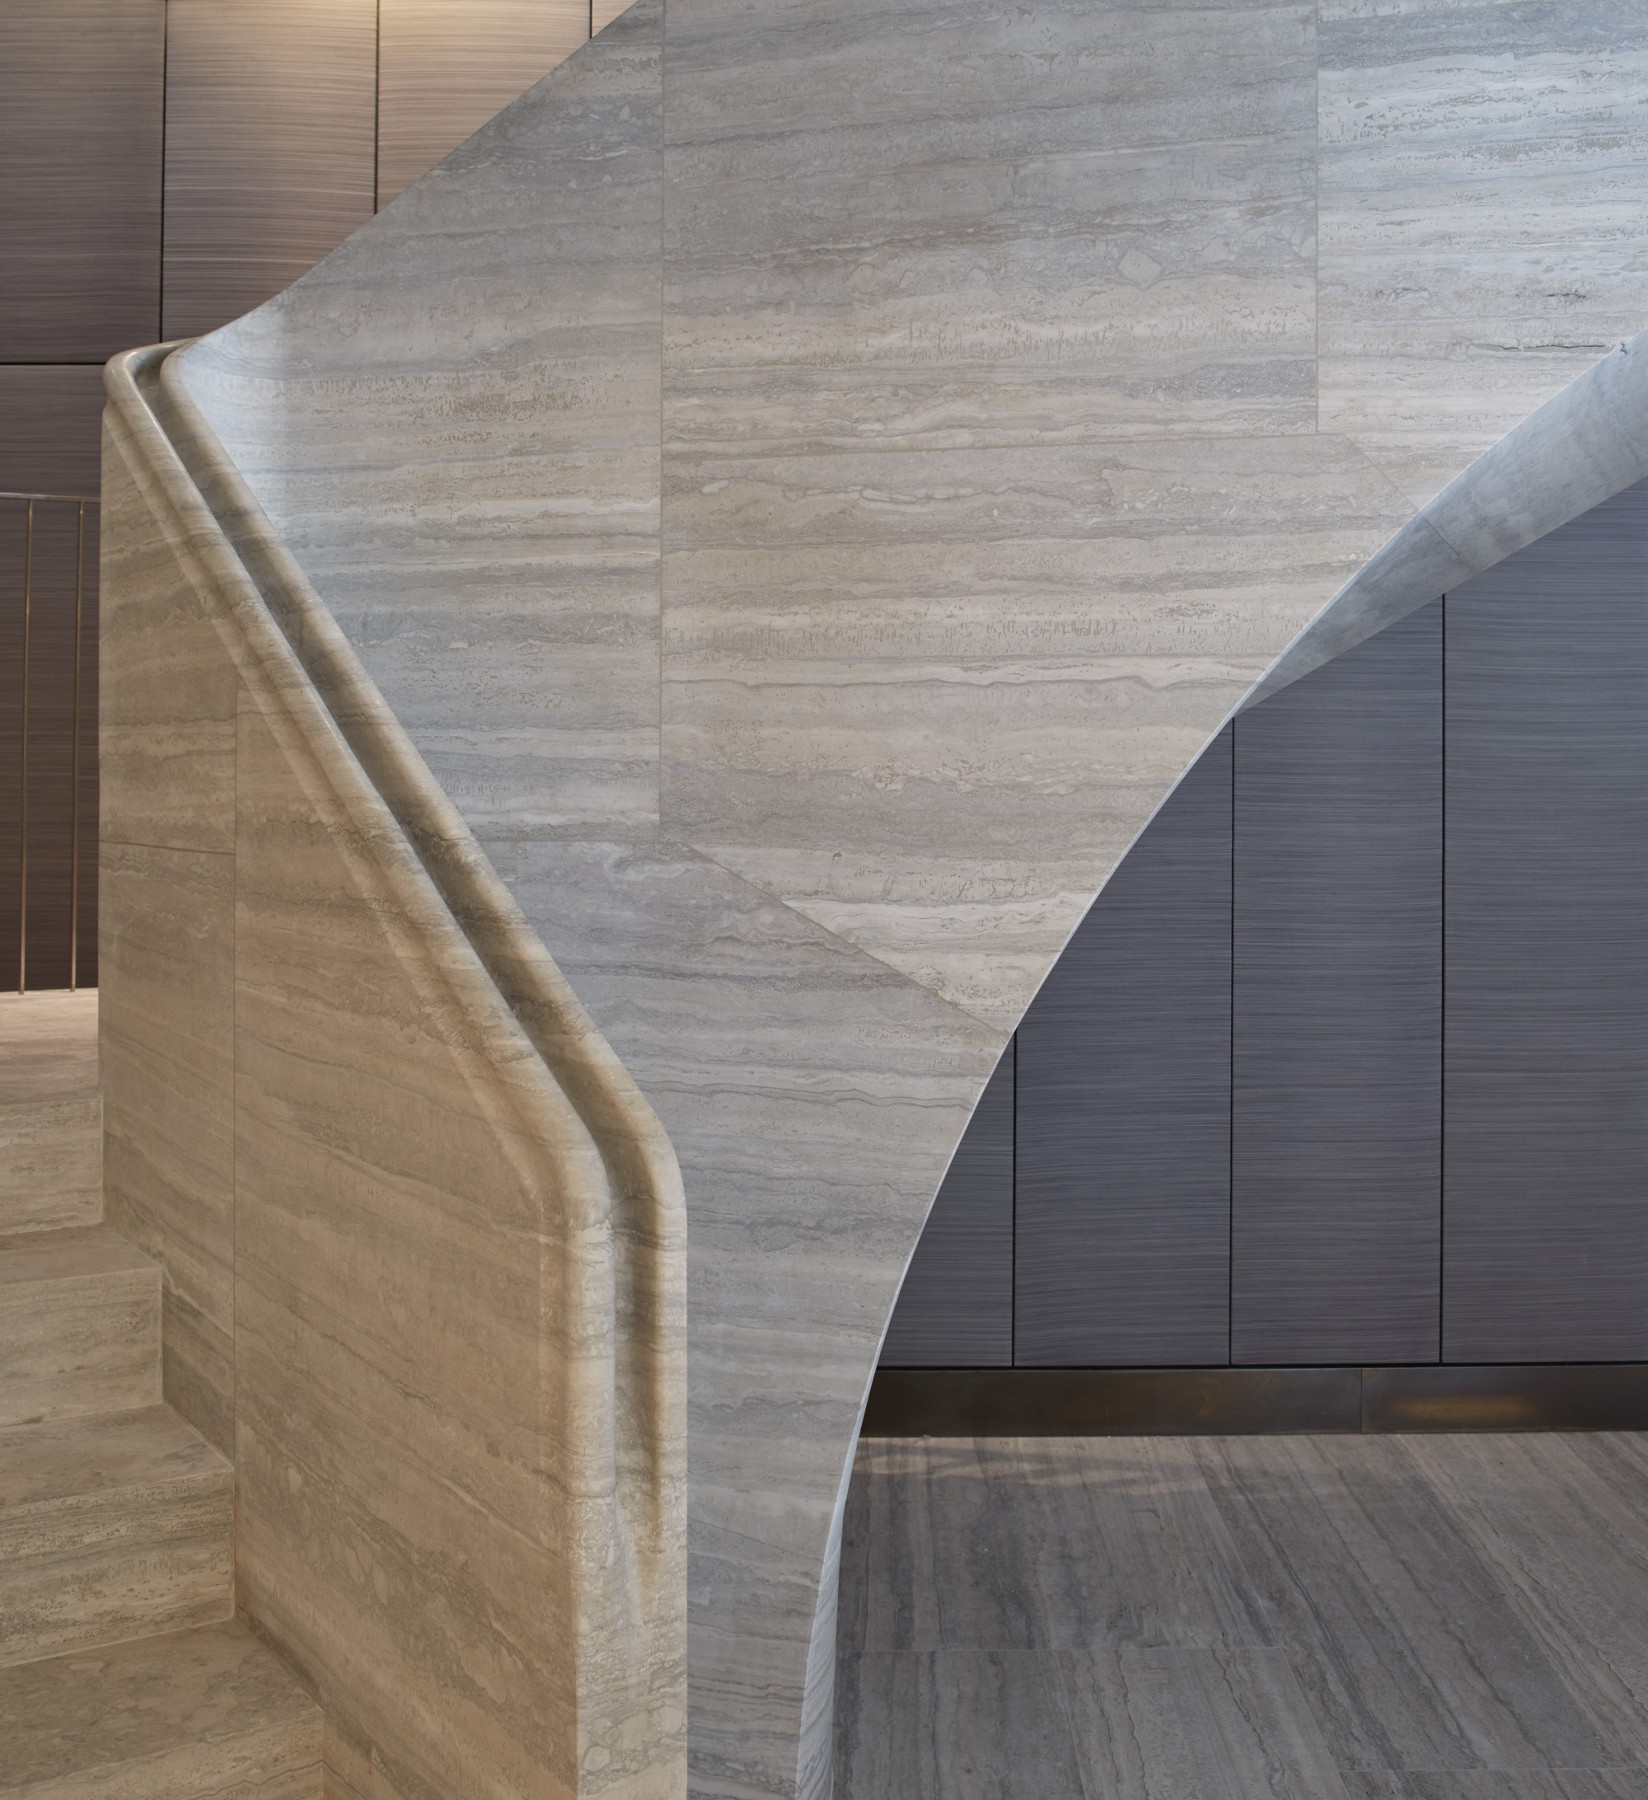 Jamie-Fobert-Architects- Travertine-stair-central-London-duplex-luxury-apartment- elegant-stone-handrail